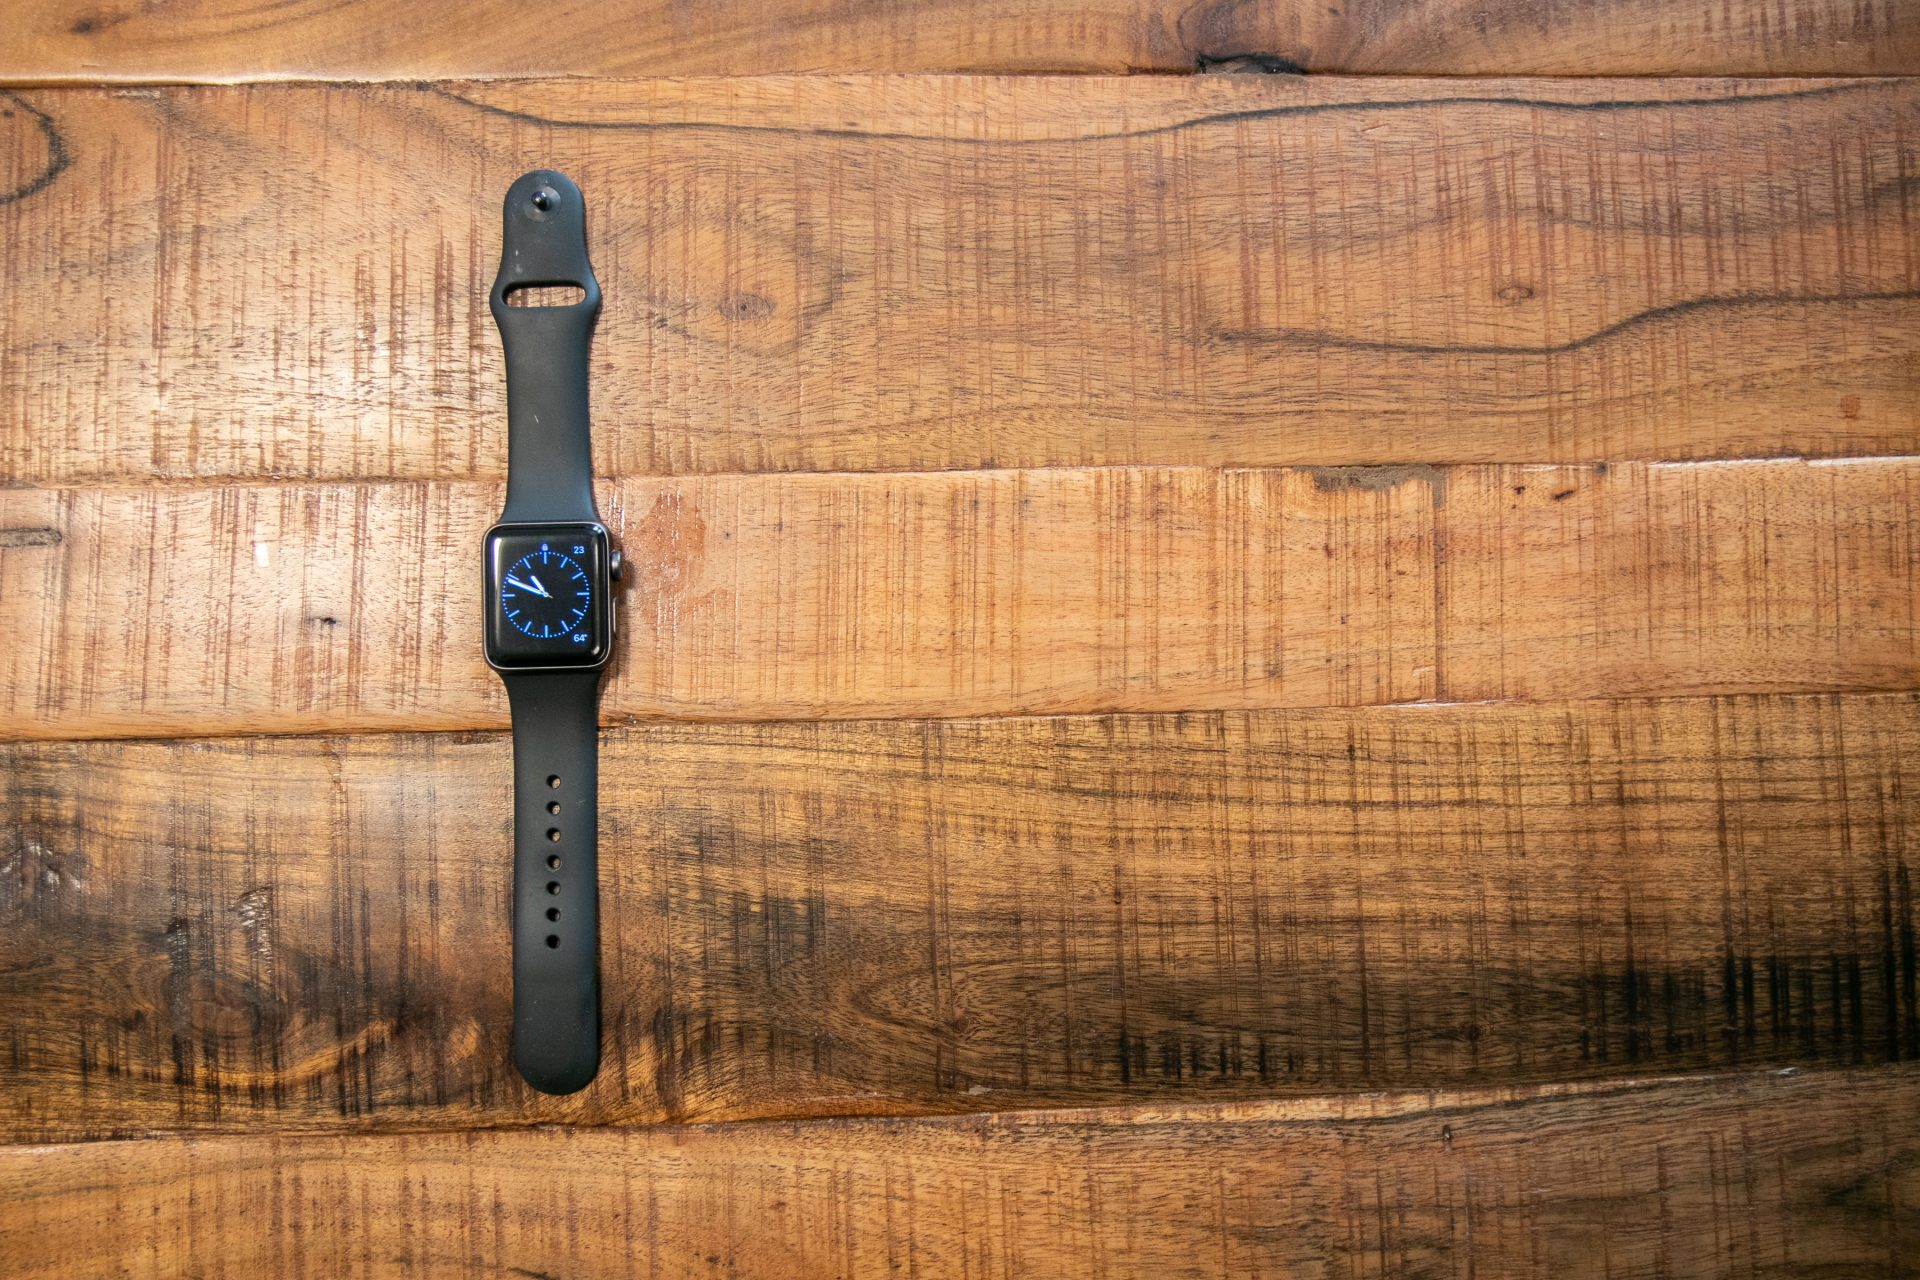 Black Smart Watch On Wooden Surface